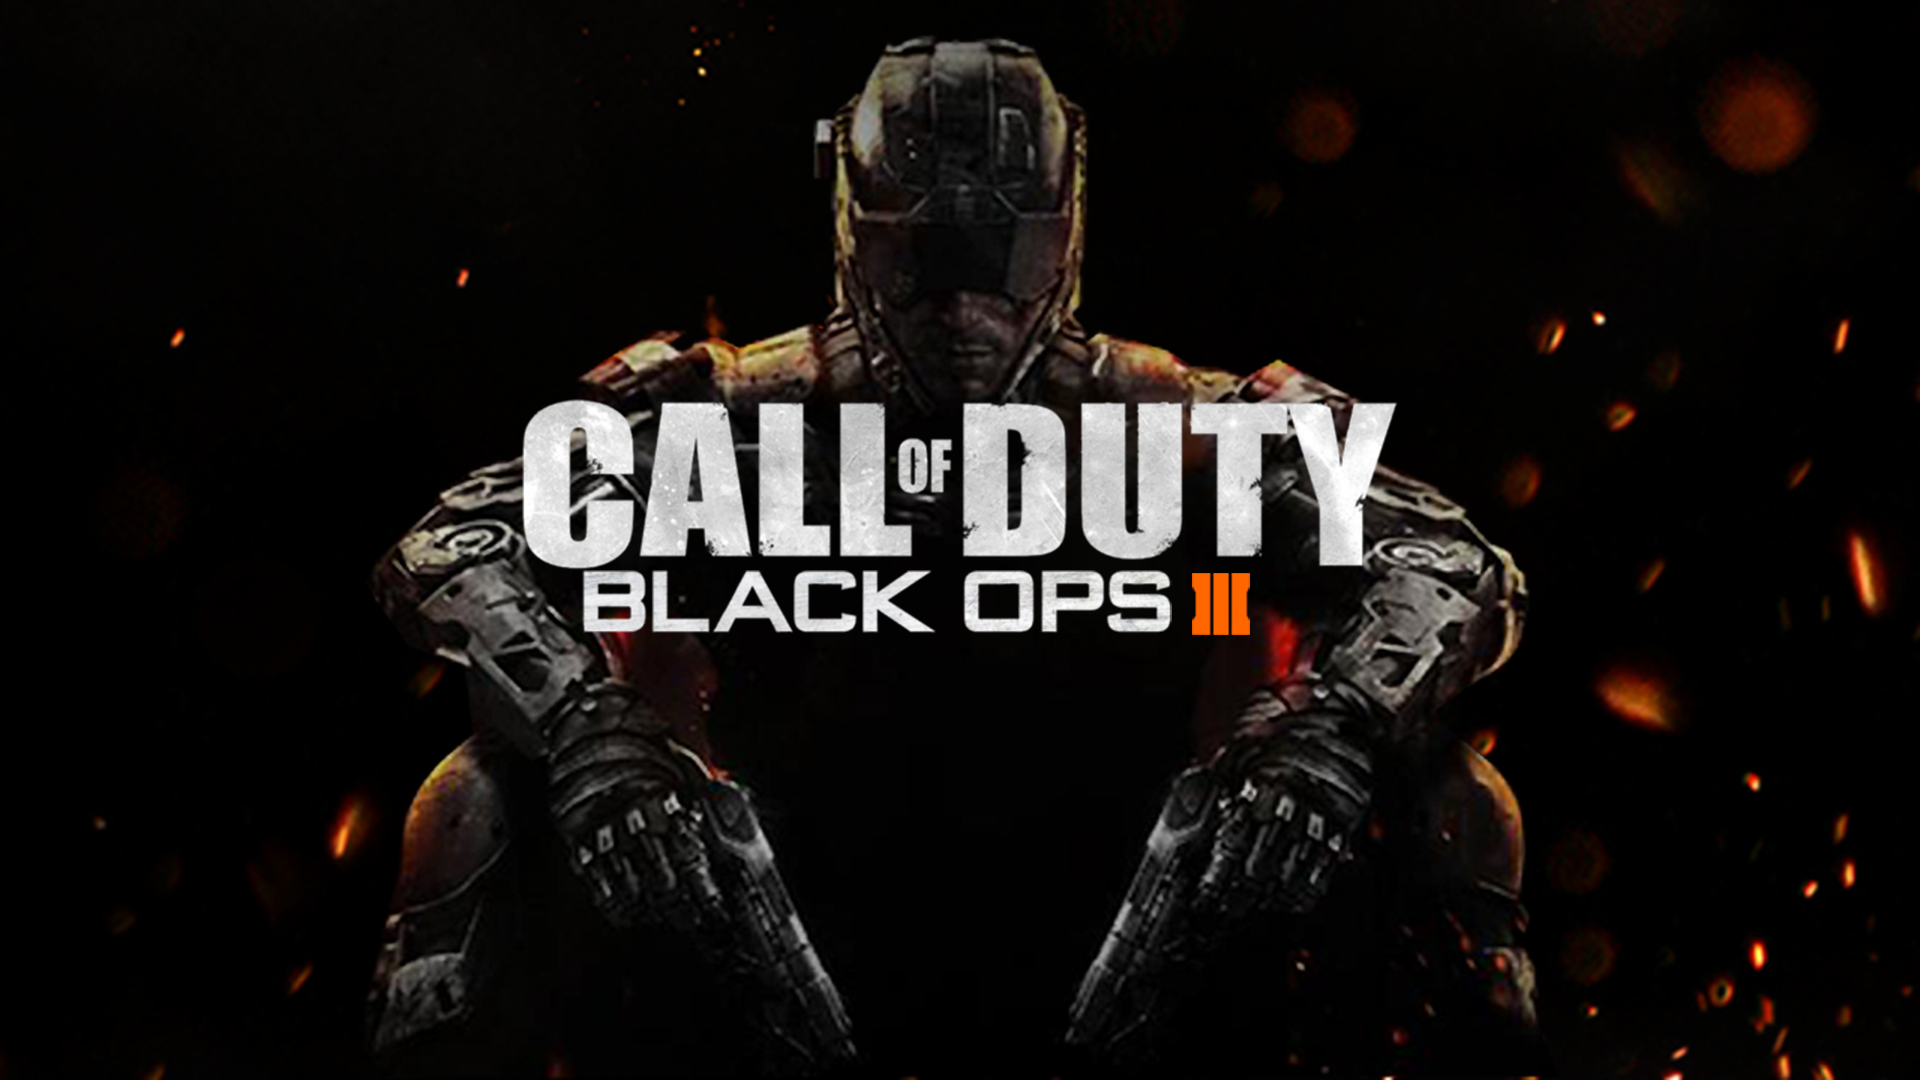 Call Of Duty Bo3 Wallpapers: Call Of Duty BO3 Wallpaper